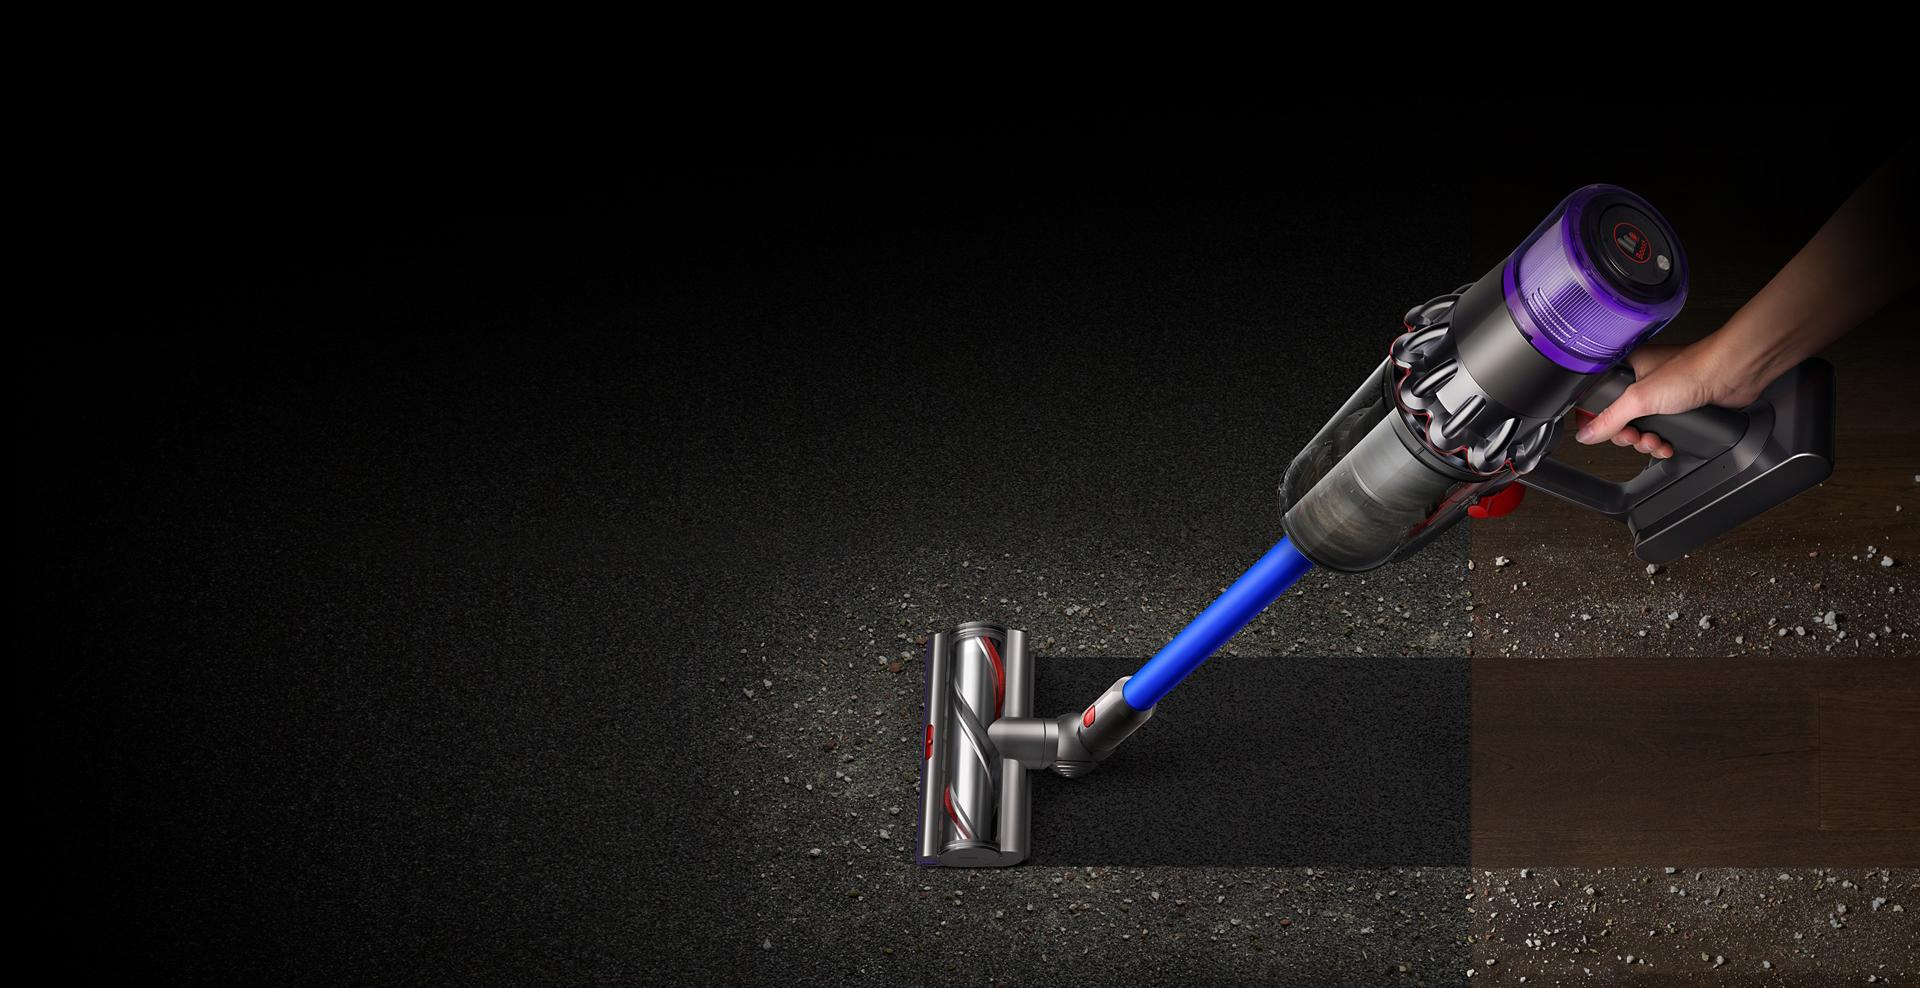 The Dyson V11™ vacuum cleaning across carpet and hard floor